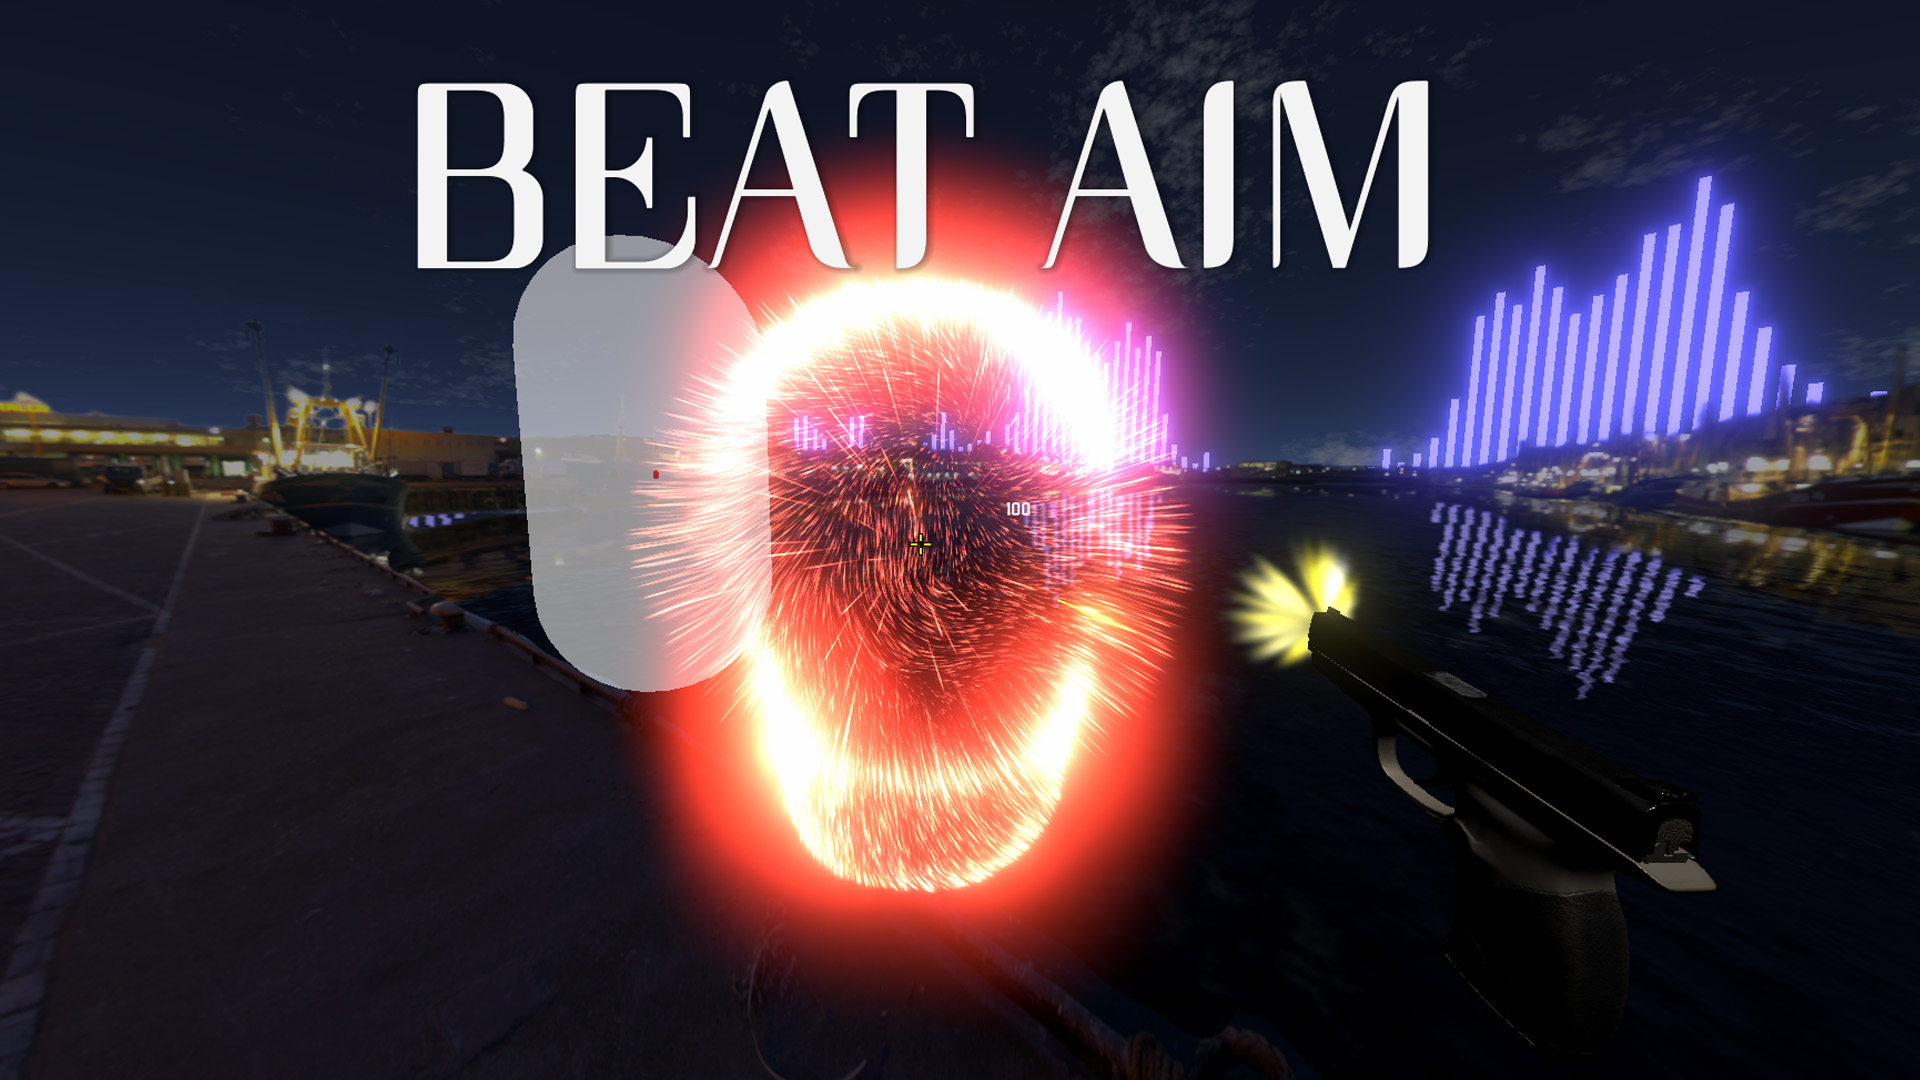 BeatAim - rhythm game designed for FPS players with ai generated maps